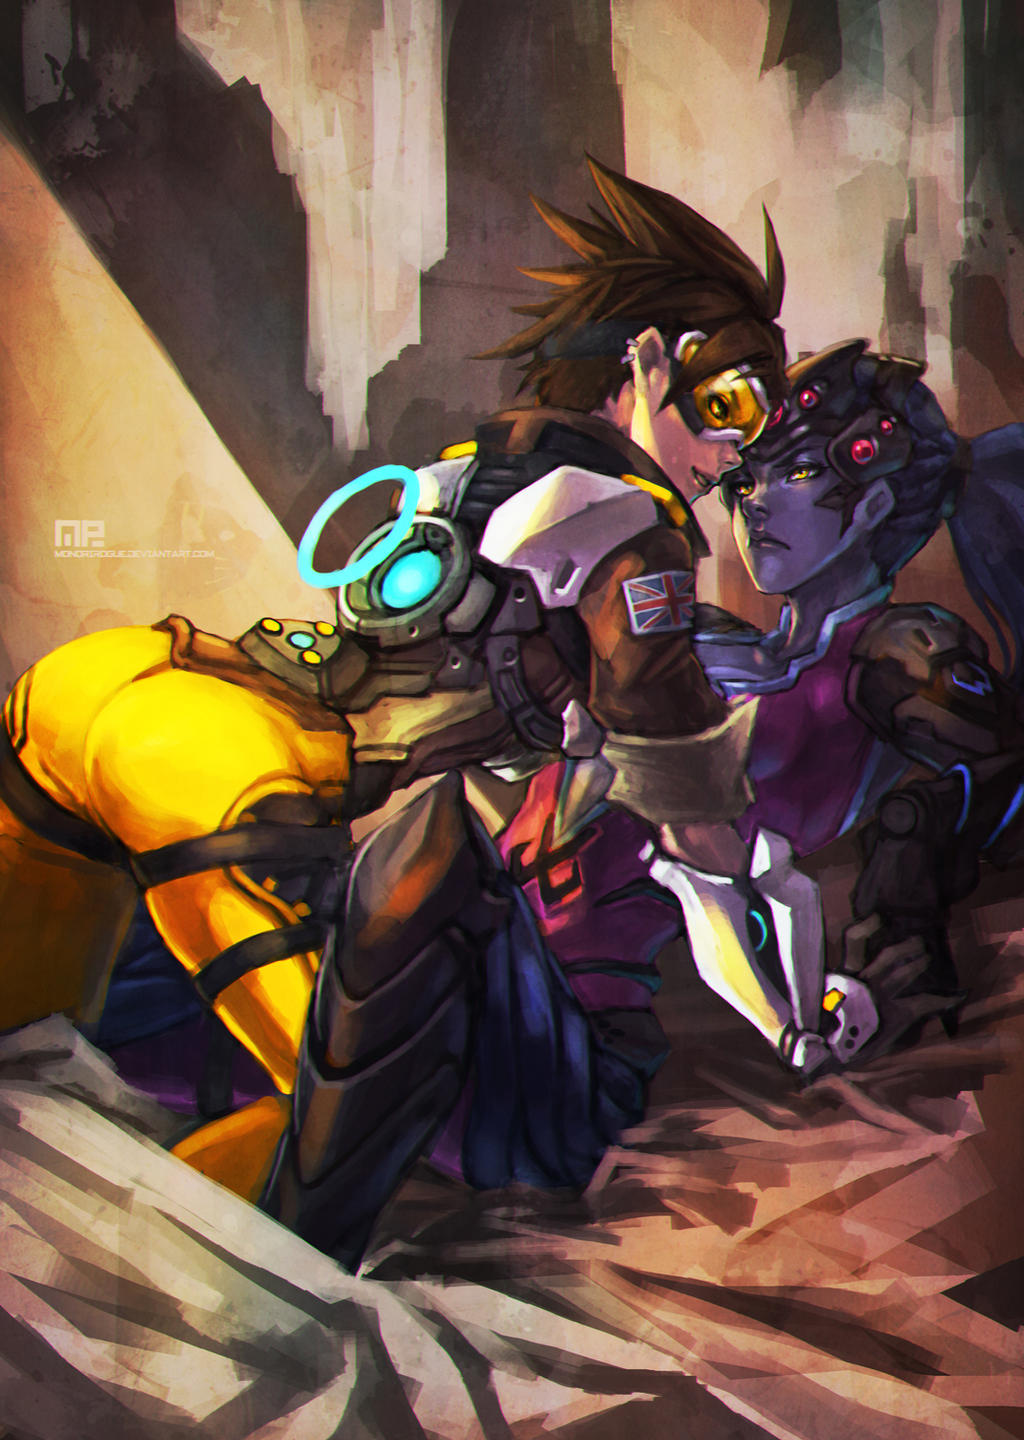 Tracer and widowmaker get it on